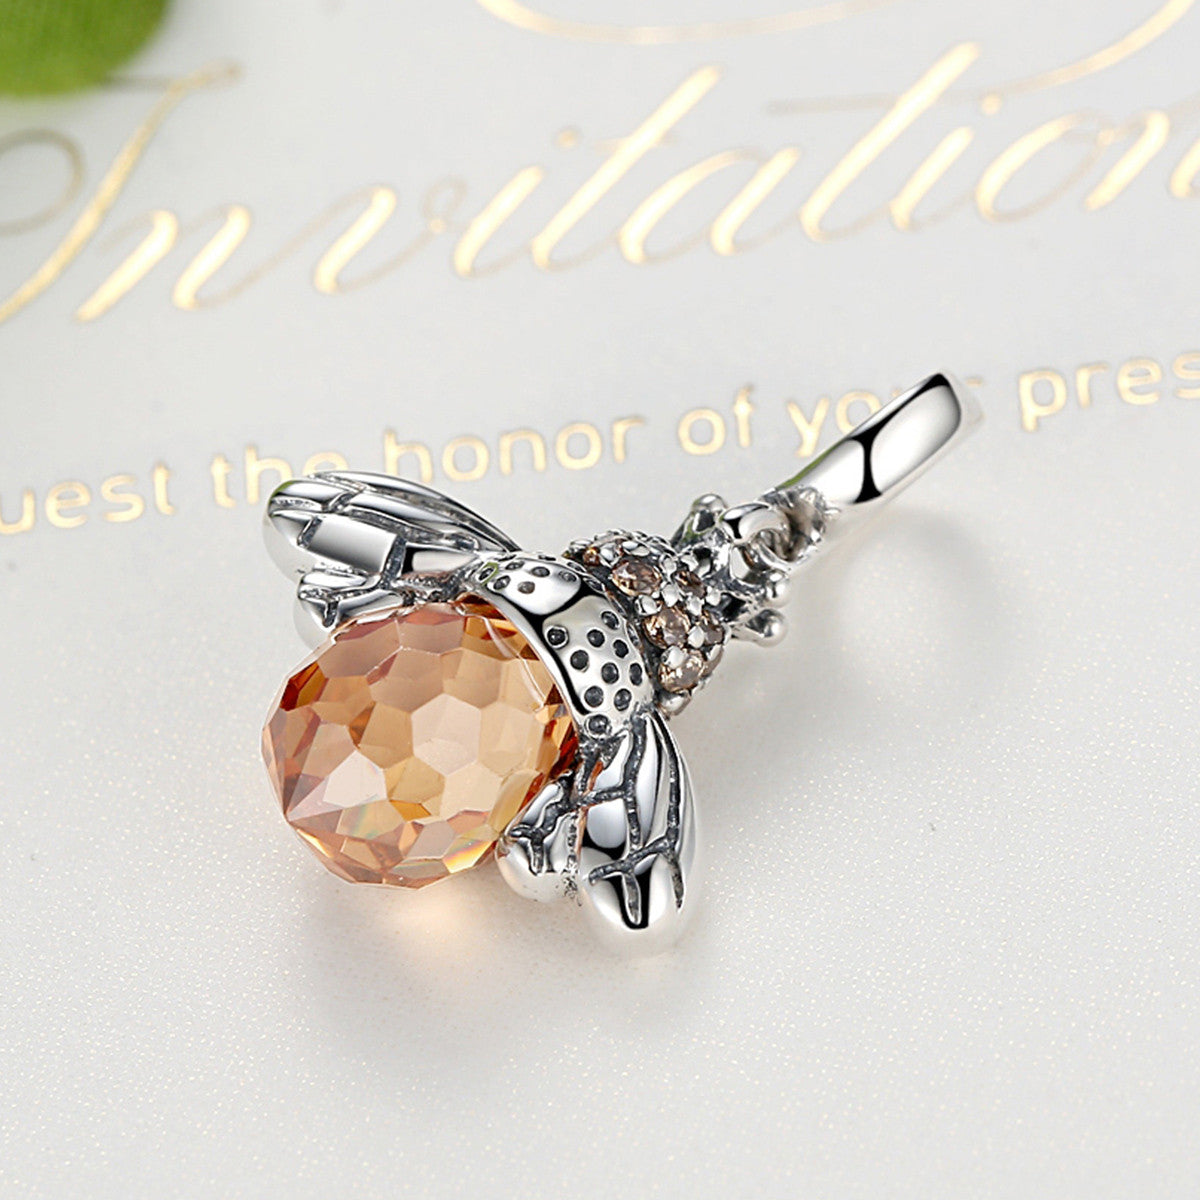 Queen bee pendant necklace bamoer 925 sterling silver cute orange queen bee animal pendant necklace for women fashion jewelry scc035 aloadofball Gallery